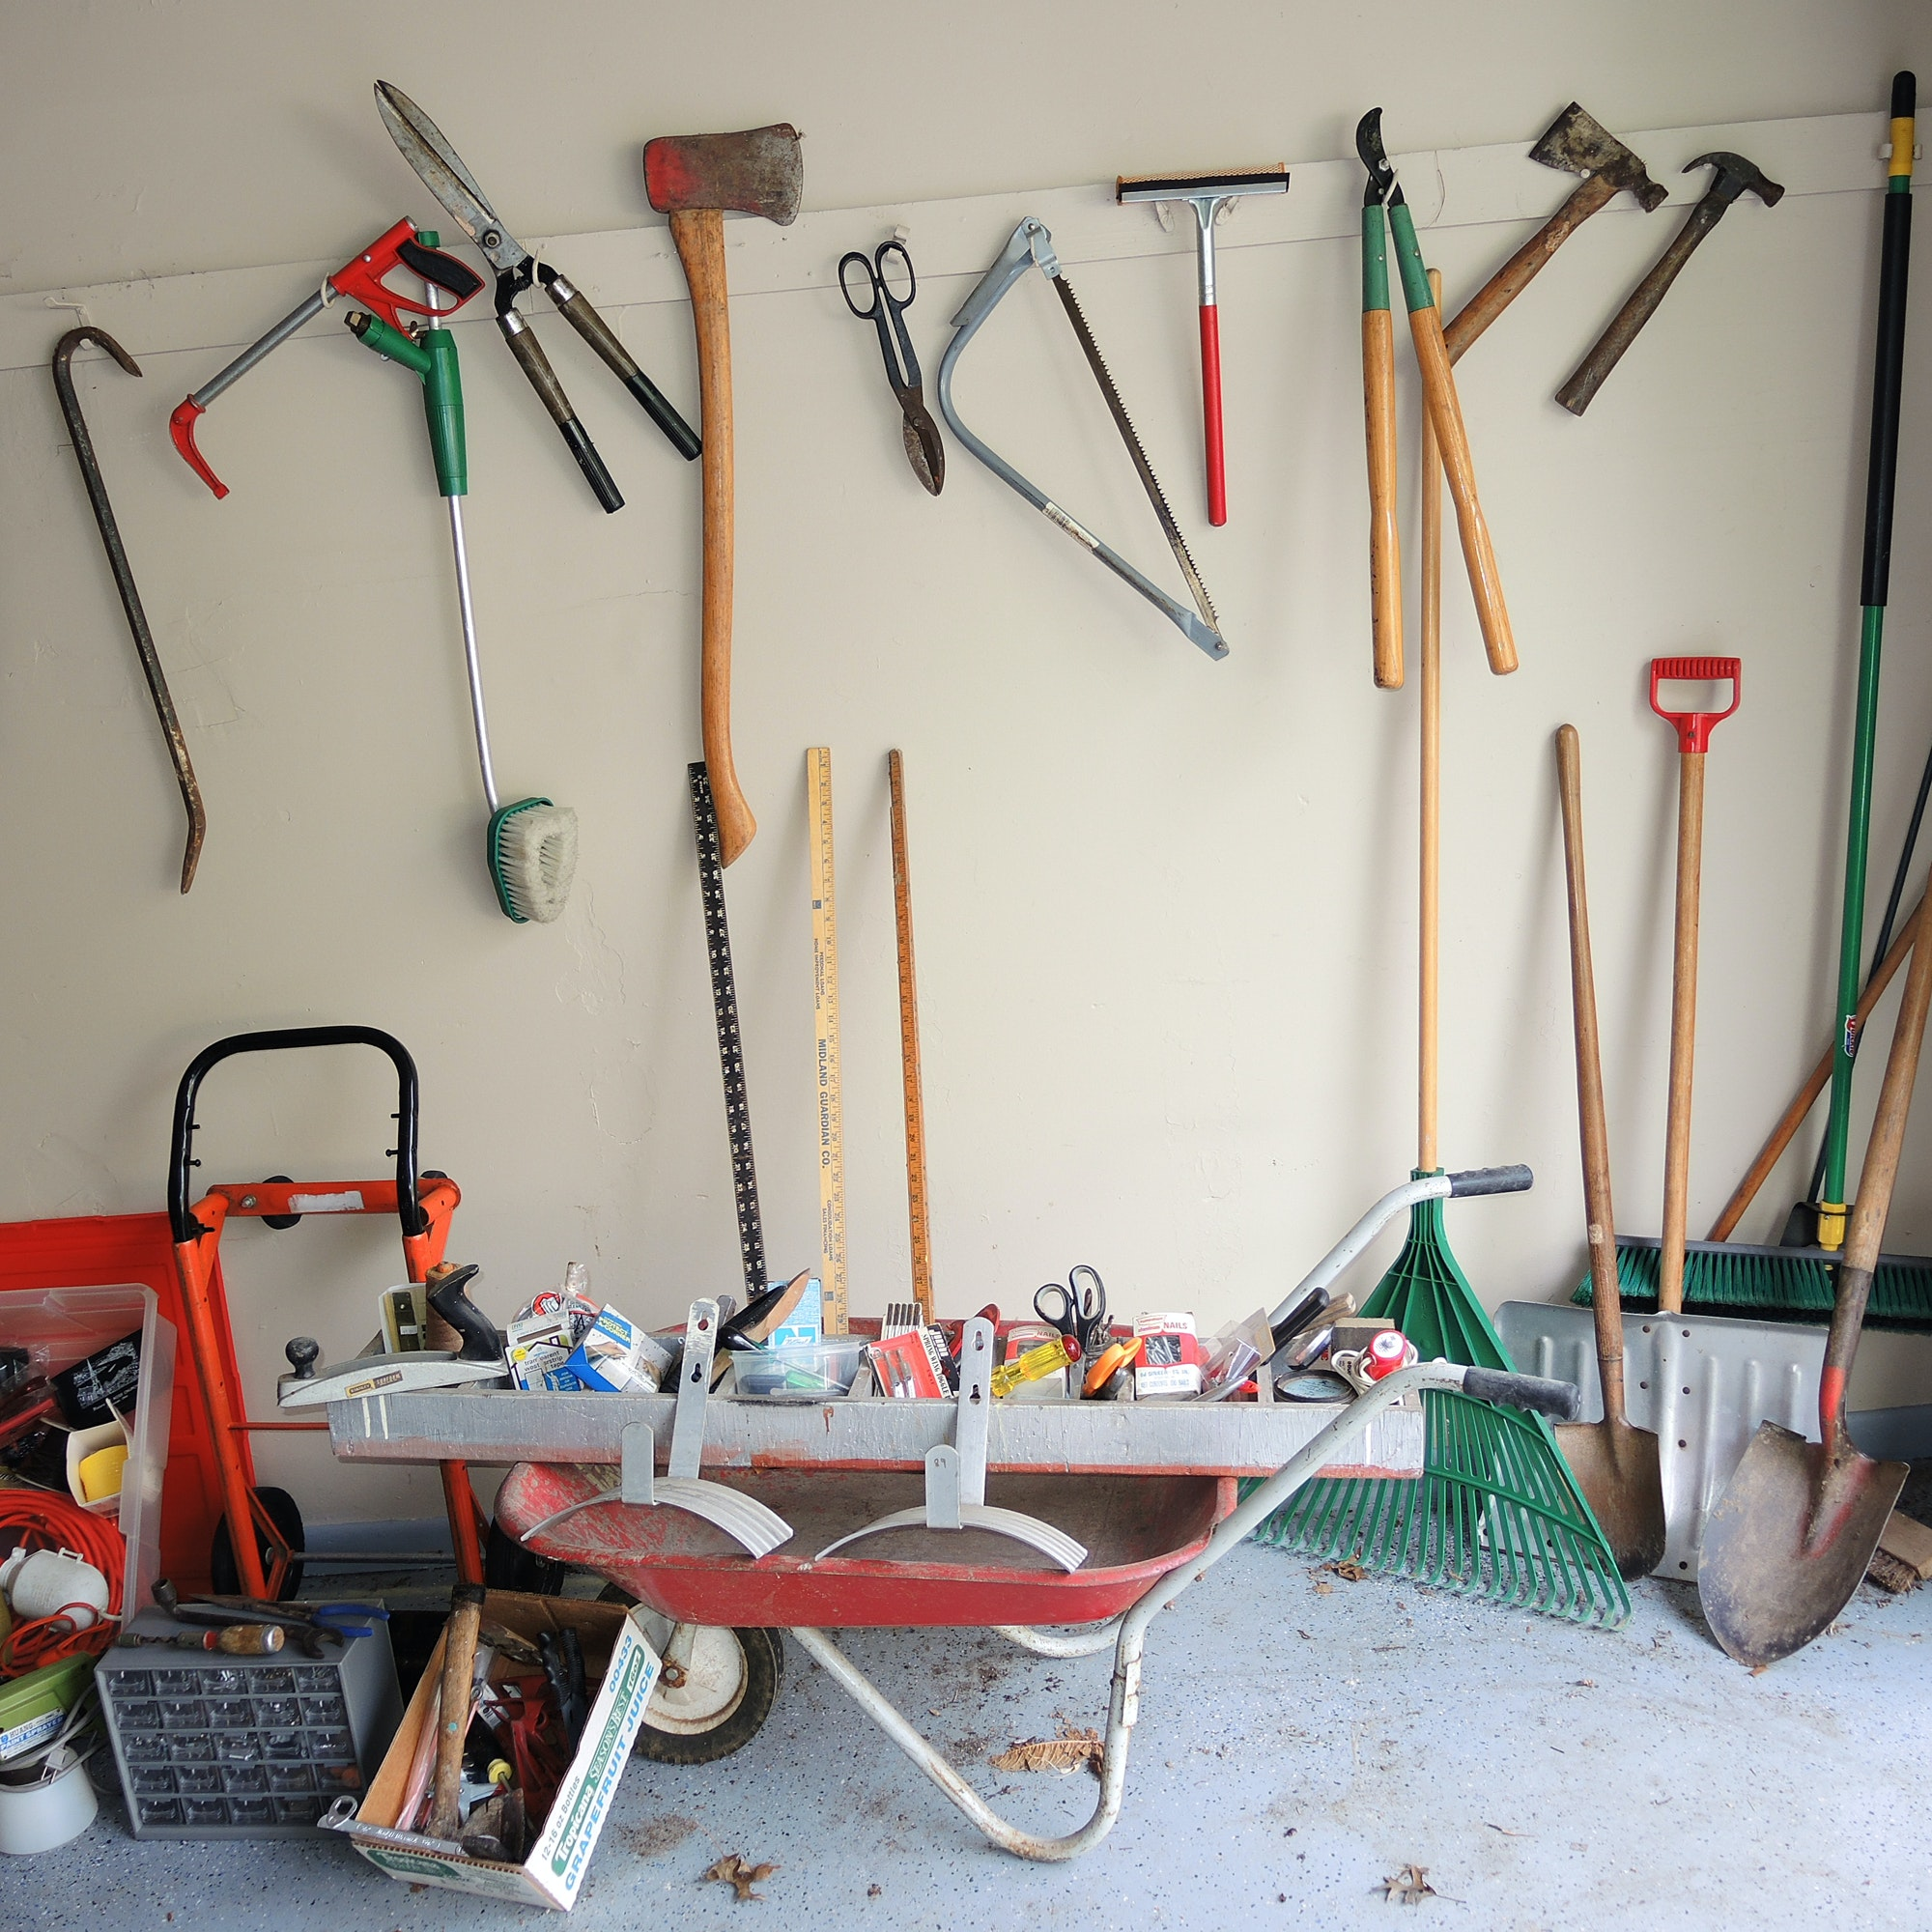 Yard and Garage Tools, Wheelbarrow, Small Parts Box and more